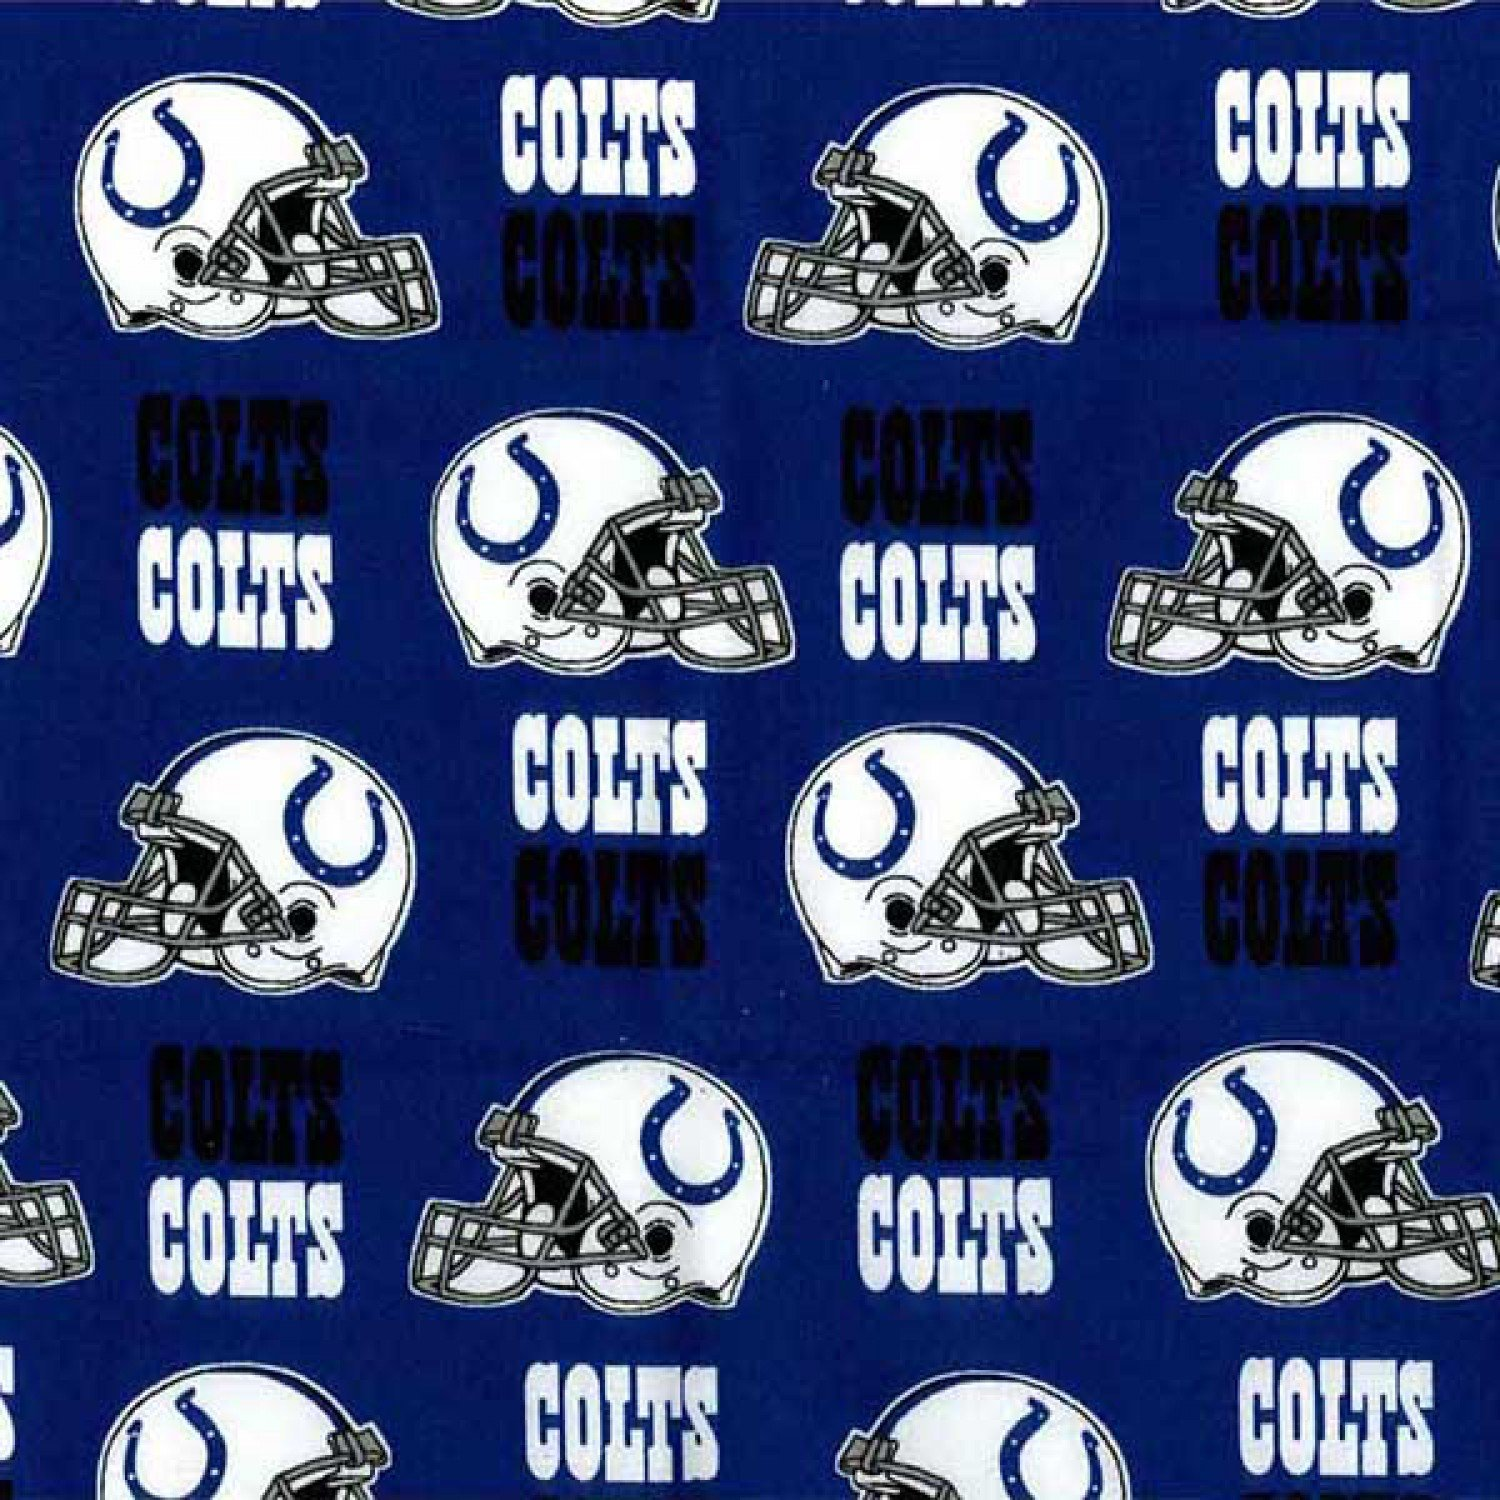 NFL Indianapolis Colts  6006-D Cotton 58-60 Wide on Blue